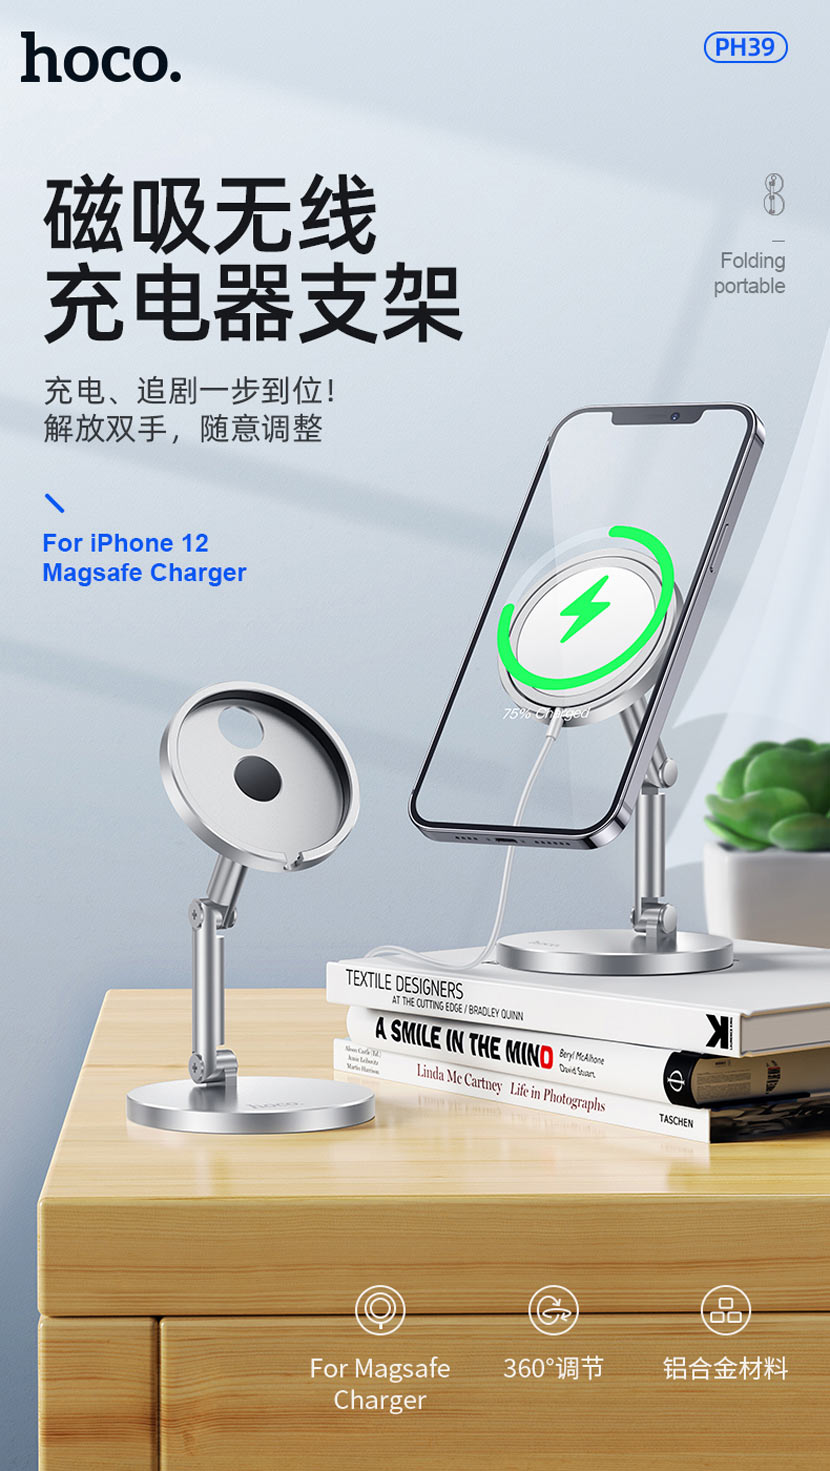 hoco news ph39 daring magnetic desktop stand with wireless charging cn